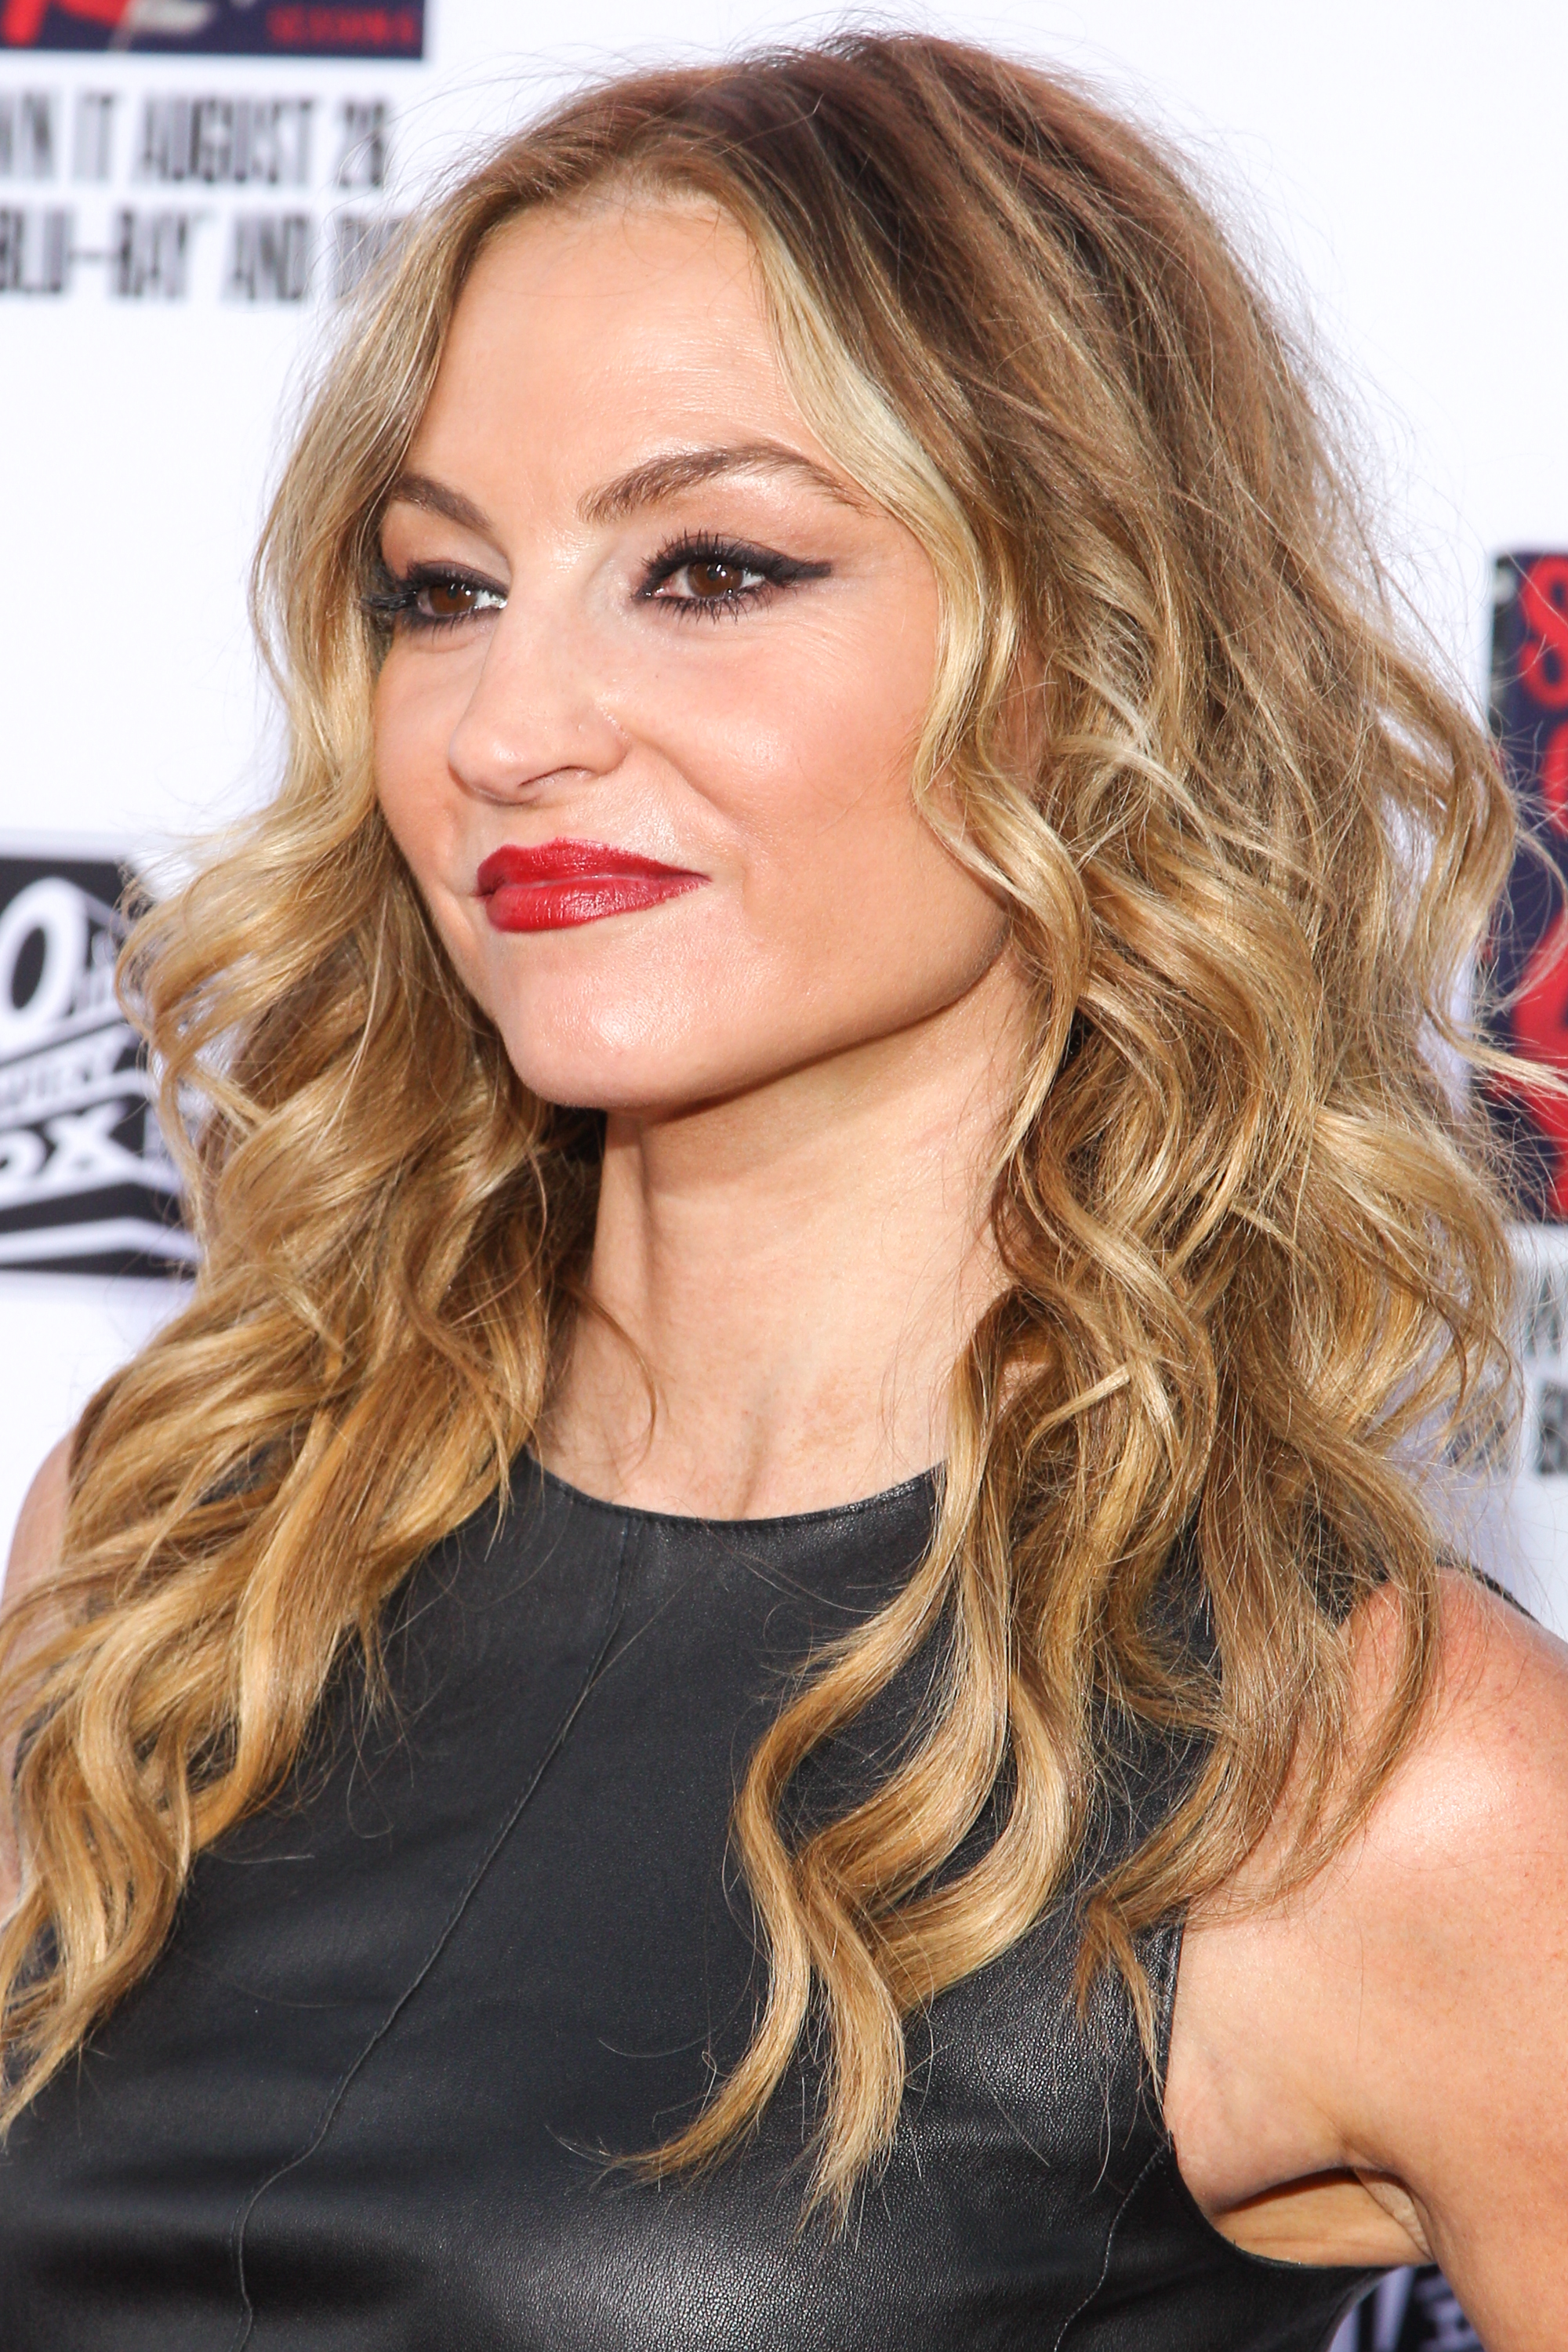 Actress Drea de Matteo attends the LA Premiere Screening of  Sons Of Anarchy  in Los Angeles on Sept. 6, 2014.